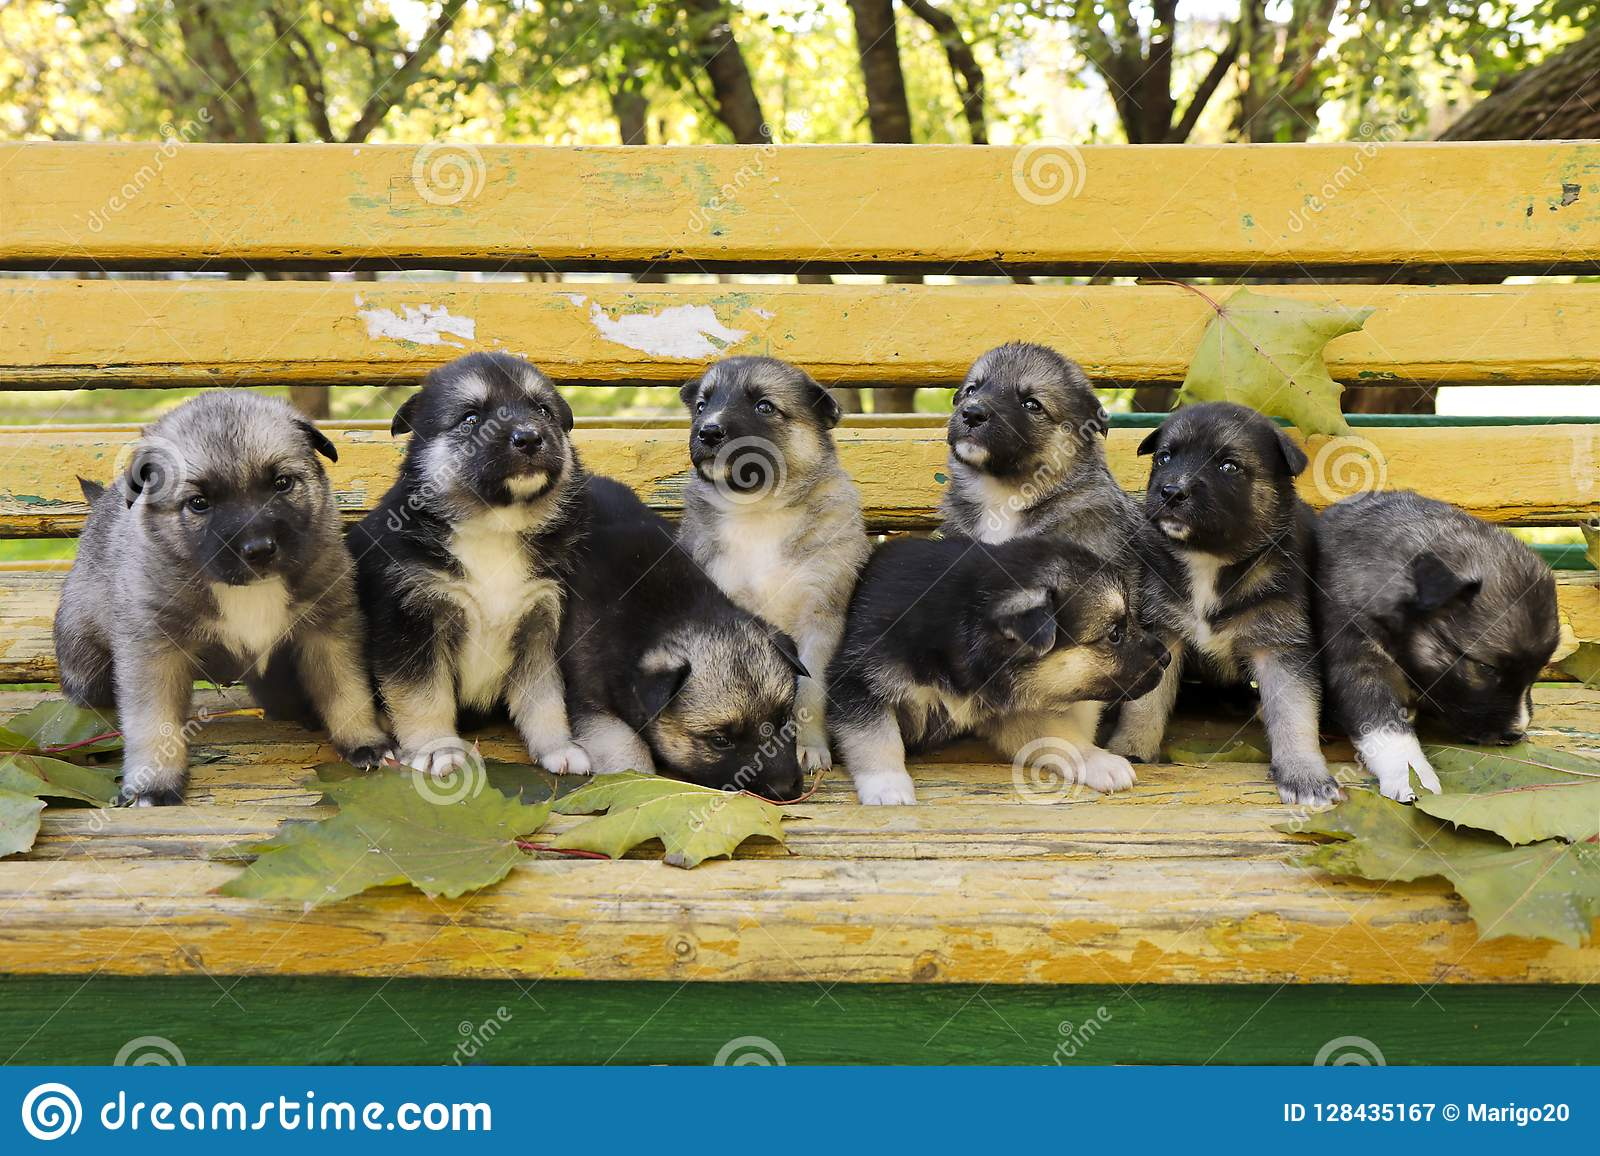 A Diverse Group Of Puppies Of Breed Of The Husky Stock Image Image